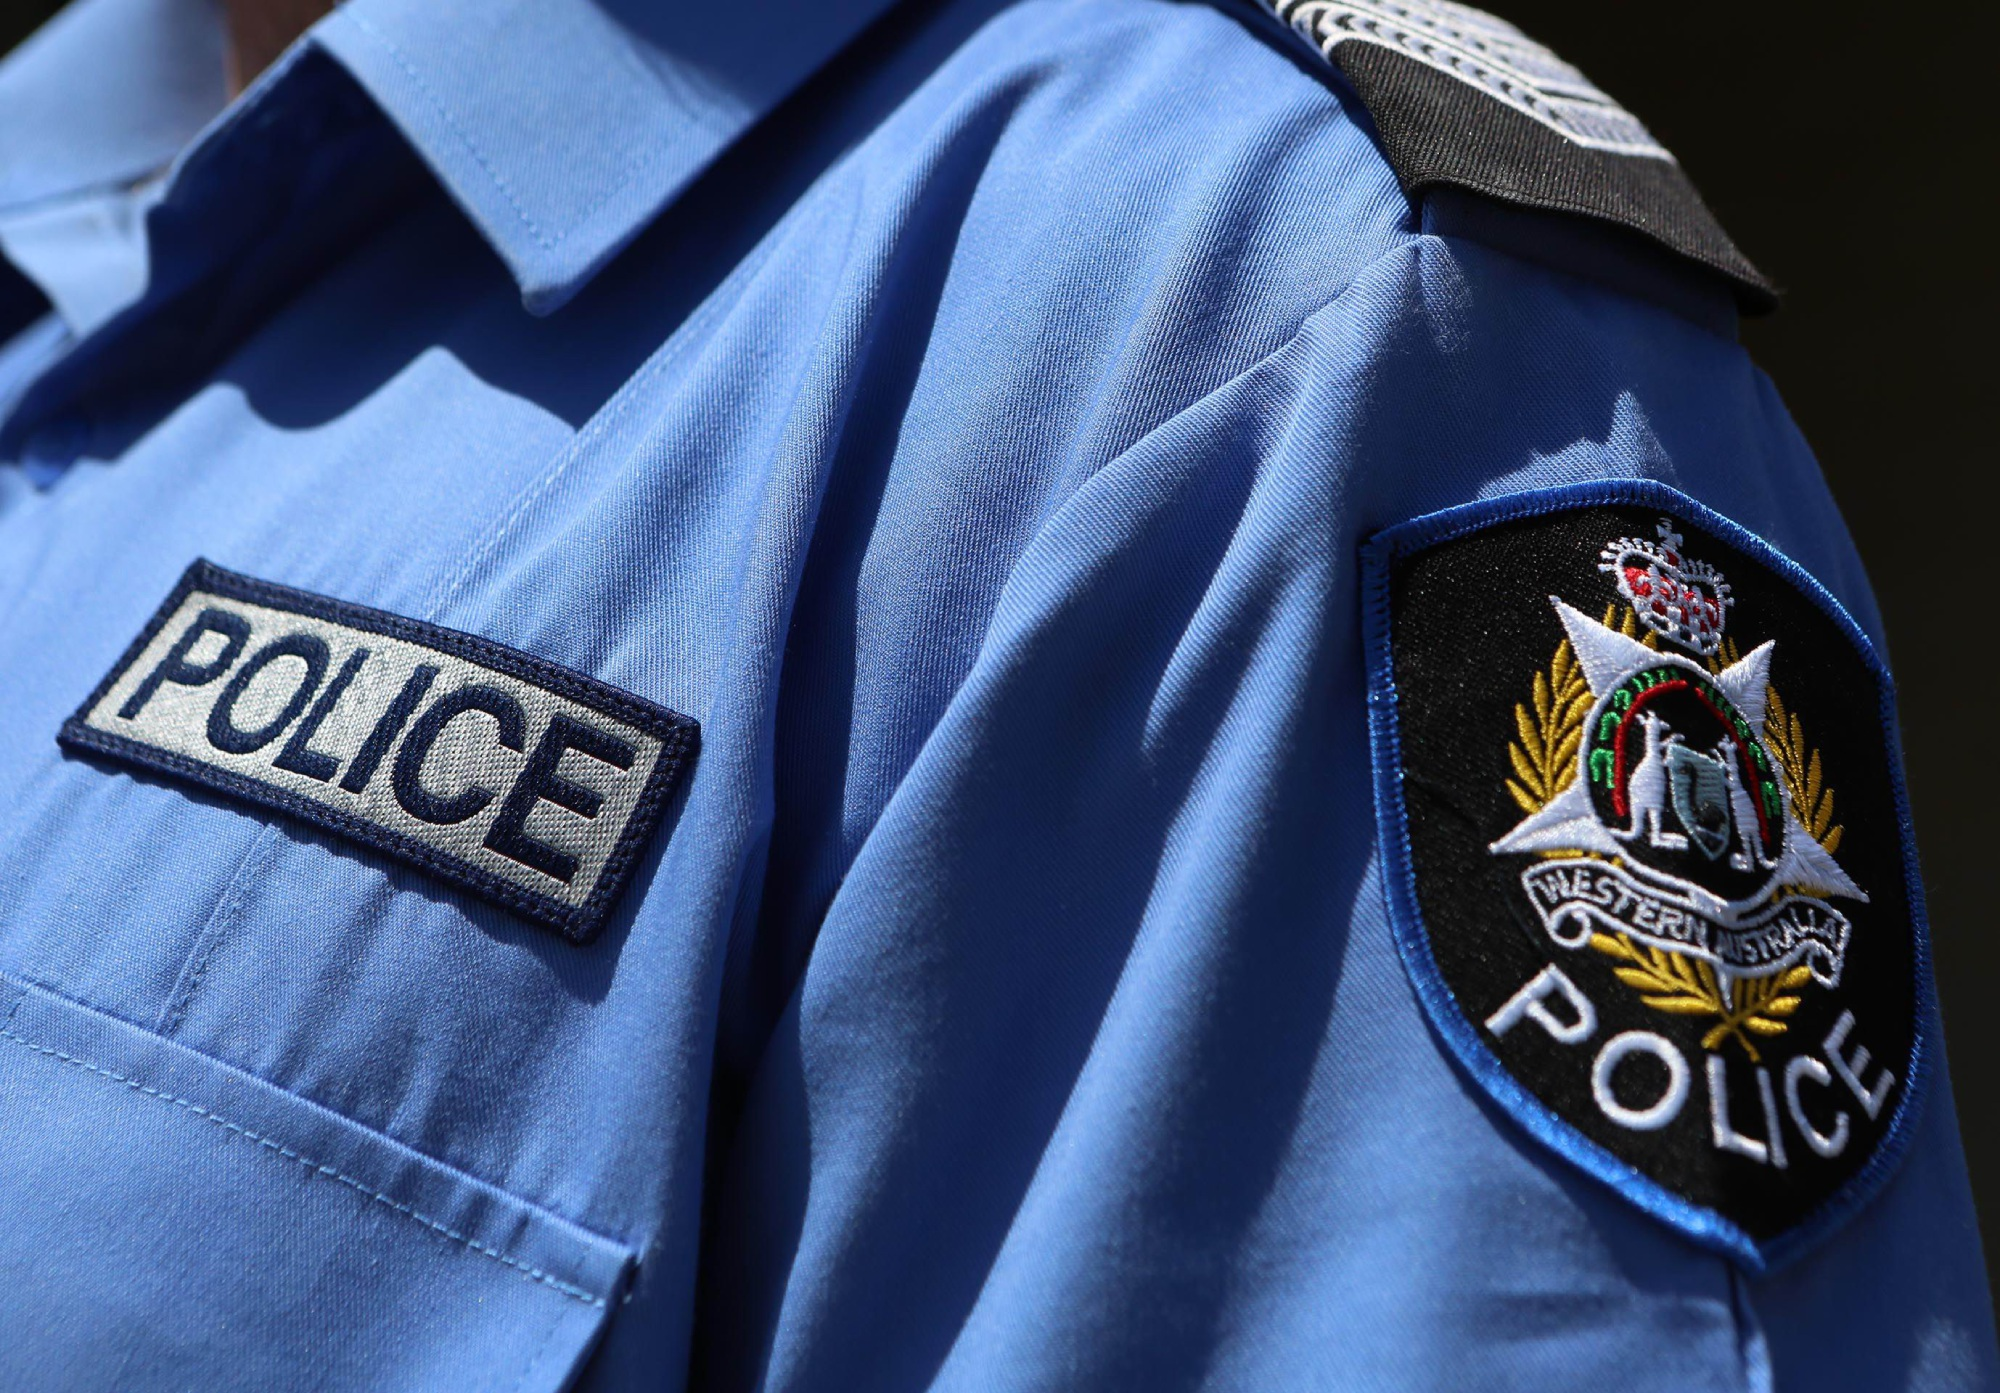 Dianella parents urged to be vigilant after man spotted acting suspiciously near primary school